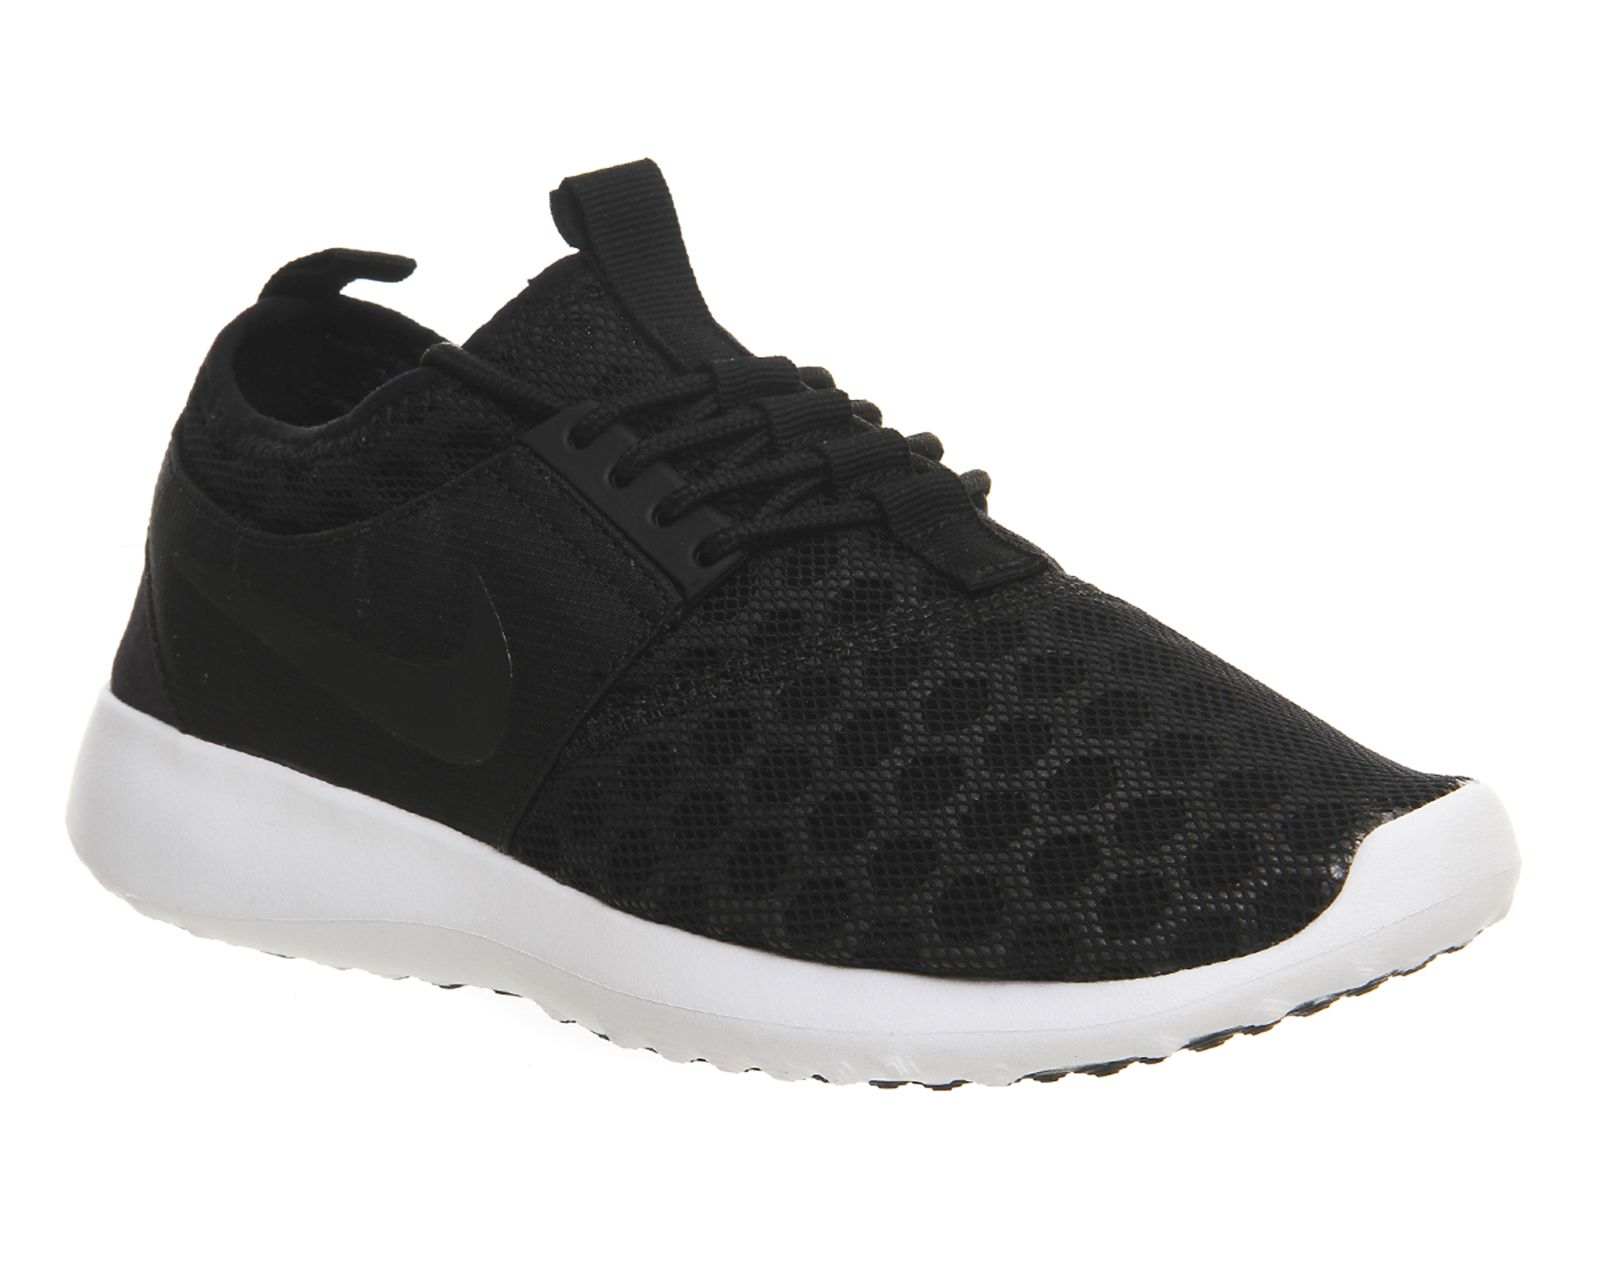 Nike Juvenate Black Black W - Hers trainers